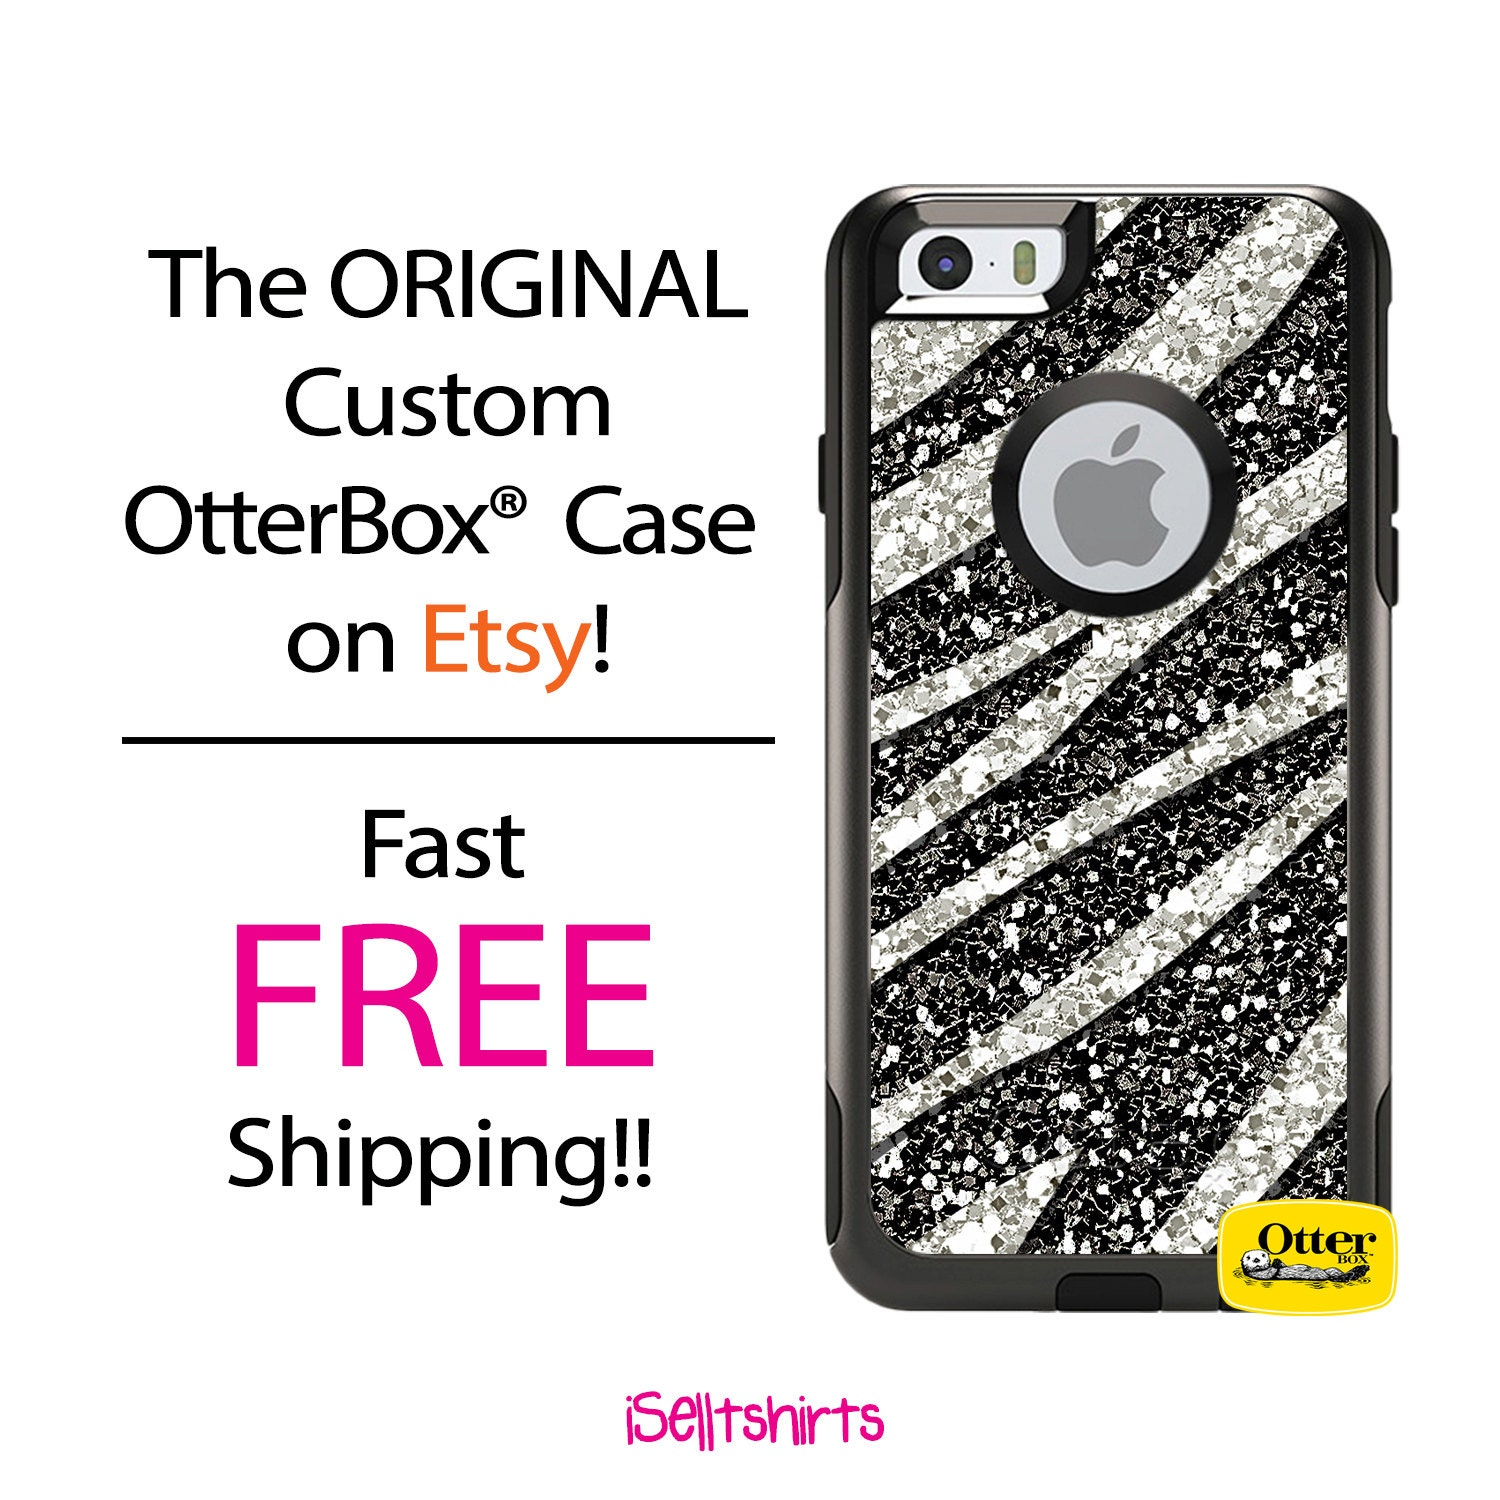 Samsung Galaxy Note Alligator Leather Wallet Case White likewise Create your own otterbox defender iphone case 256269404505199705 moreover Iphone 6 cases together with Customize your own otterbox iphone case 256449753927875696 together with Samsung Wiring Diagrams. on iphone 4 phone cases otterbox